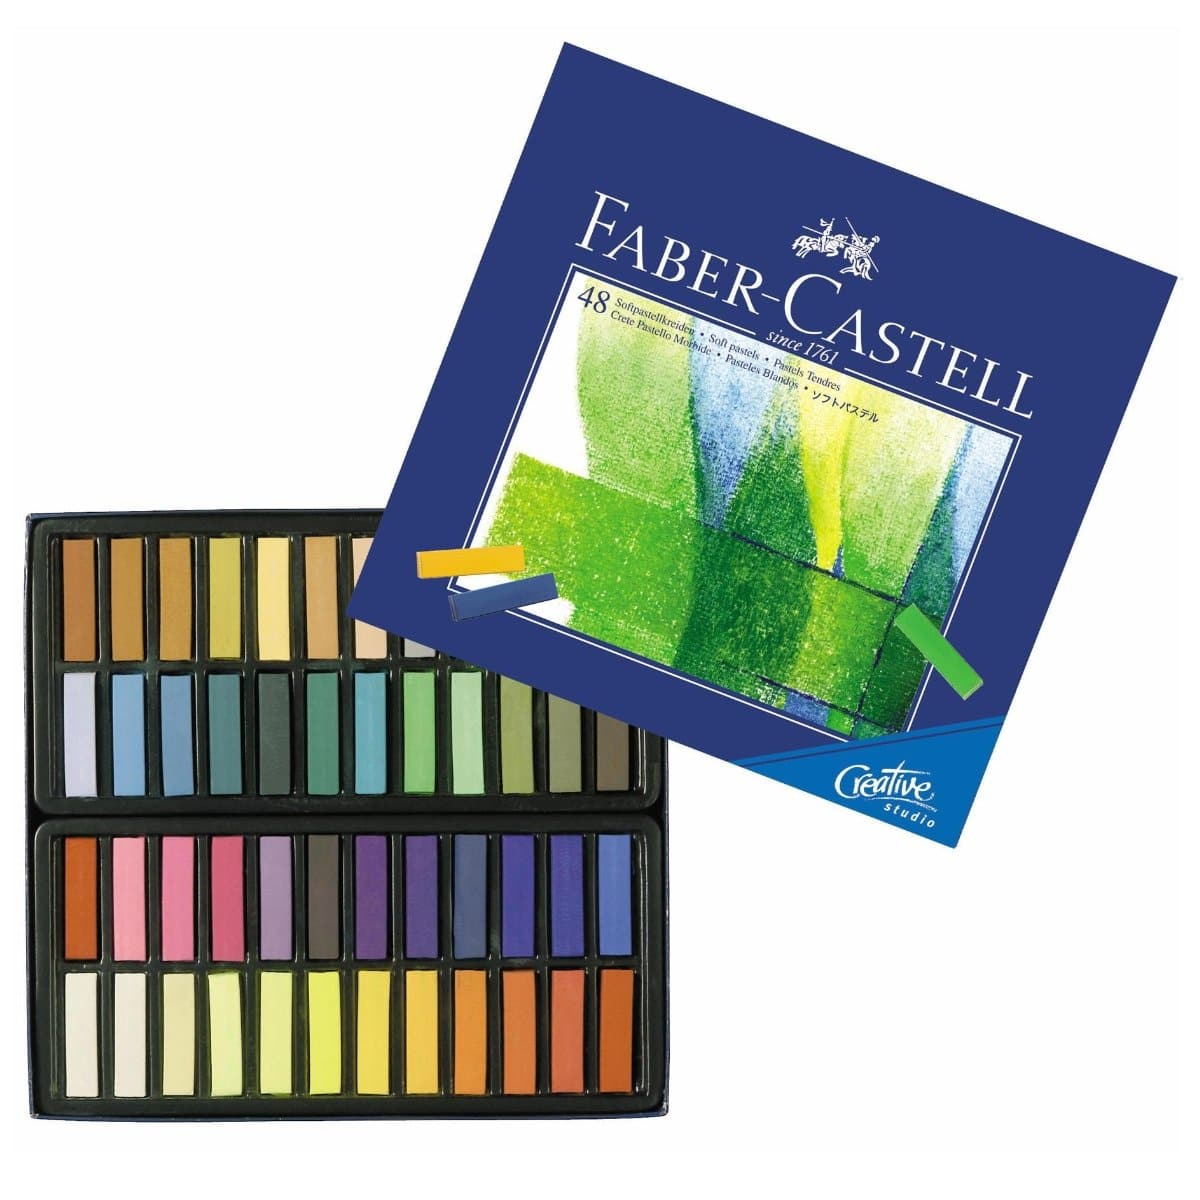 Faber Castell Soft Pastels Crayons, 48/pack